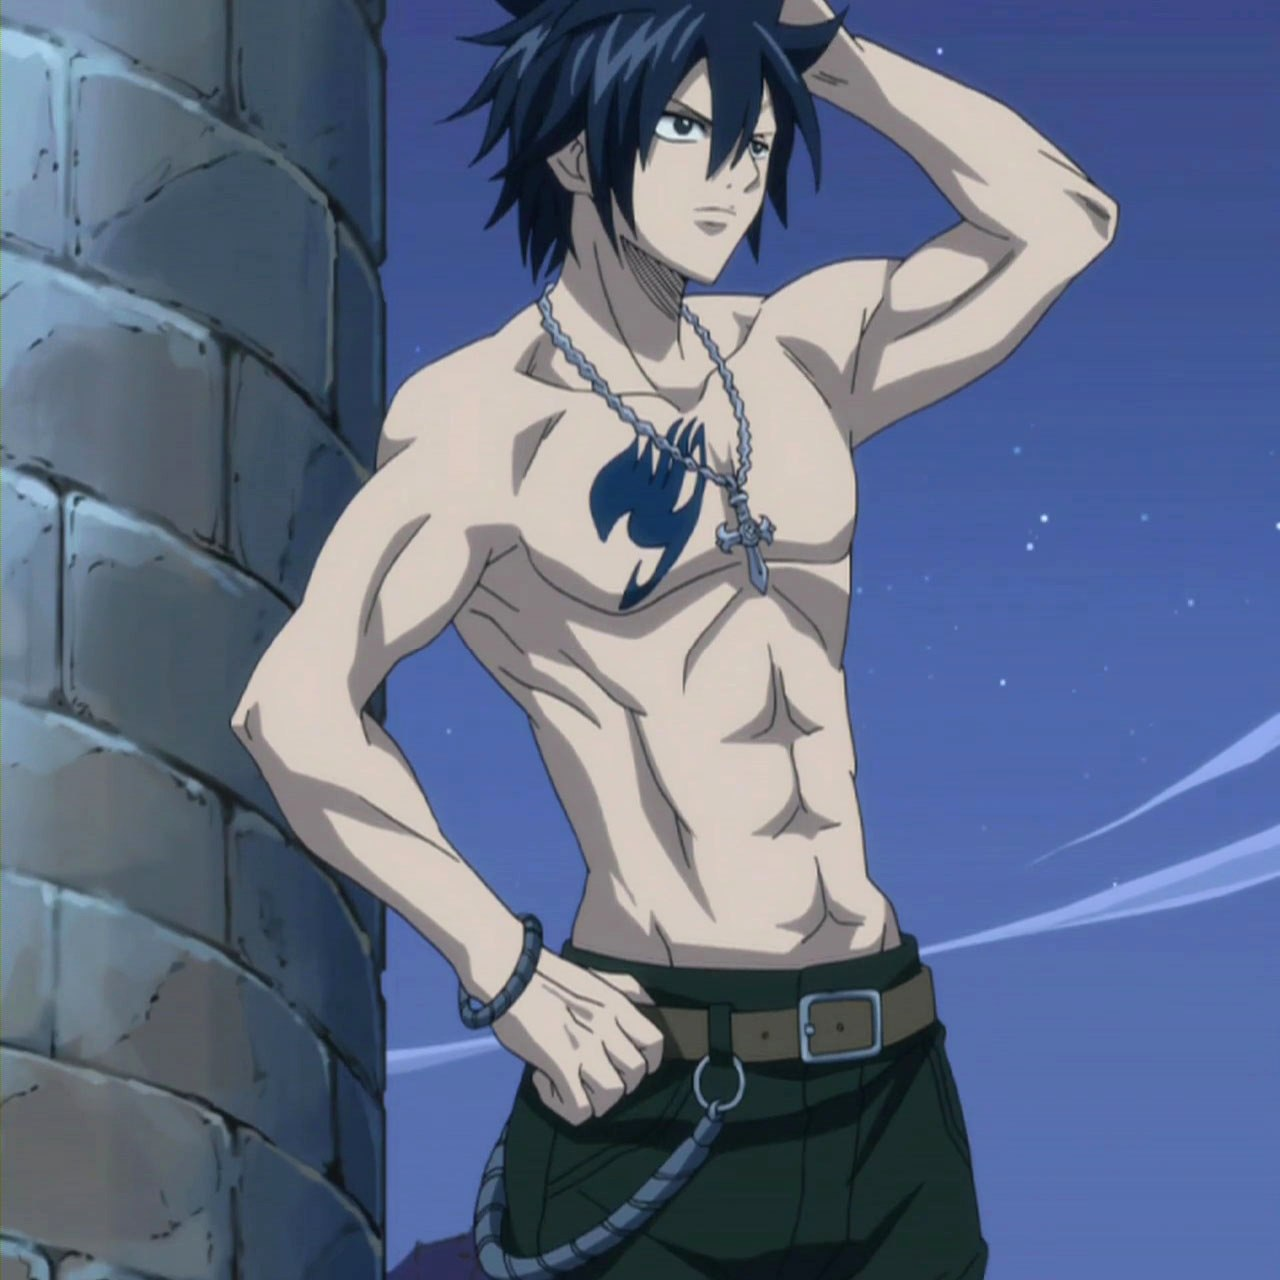 how tall is grey fullbuster